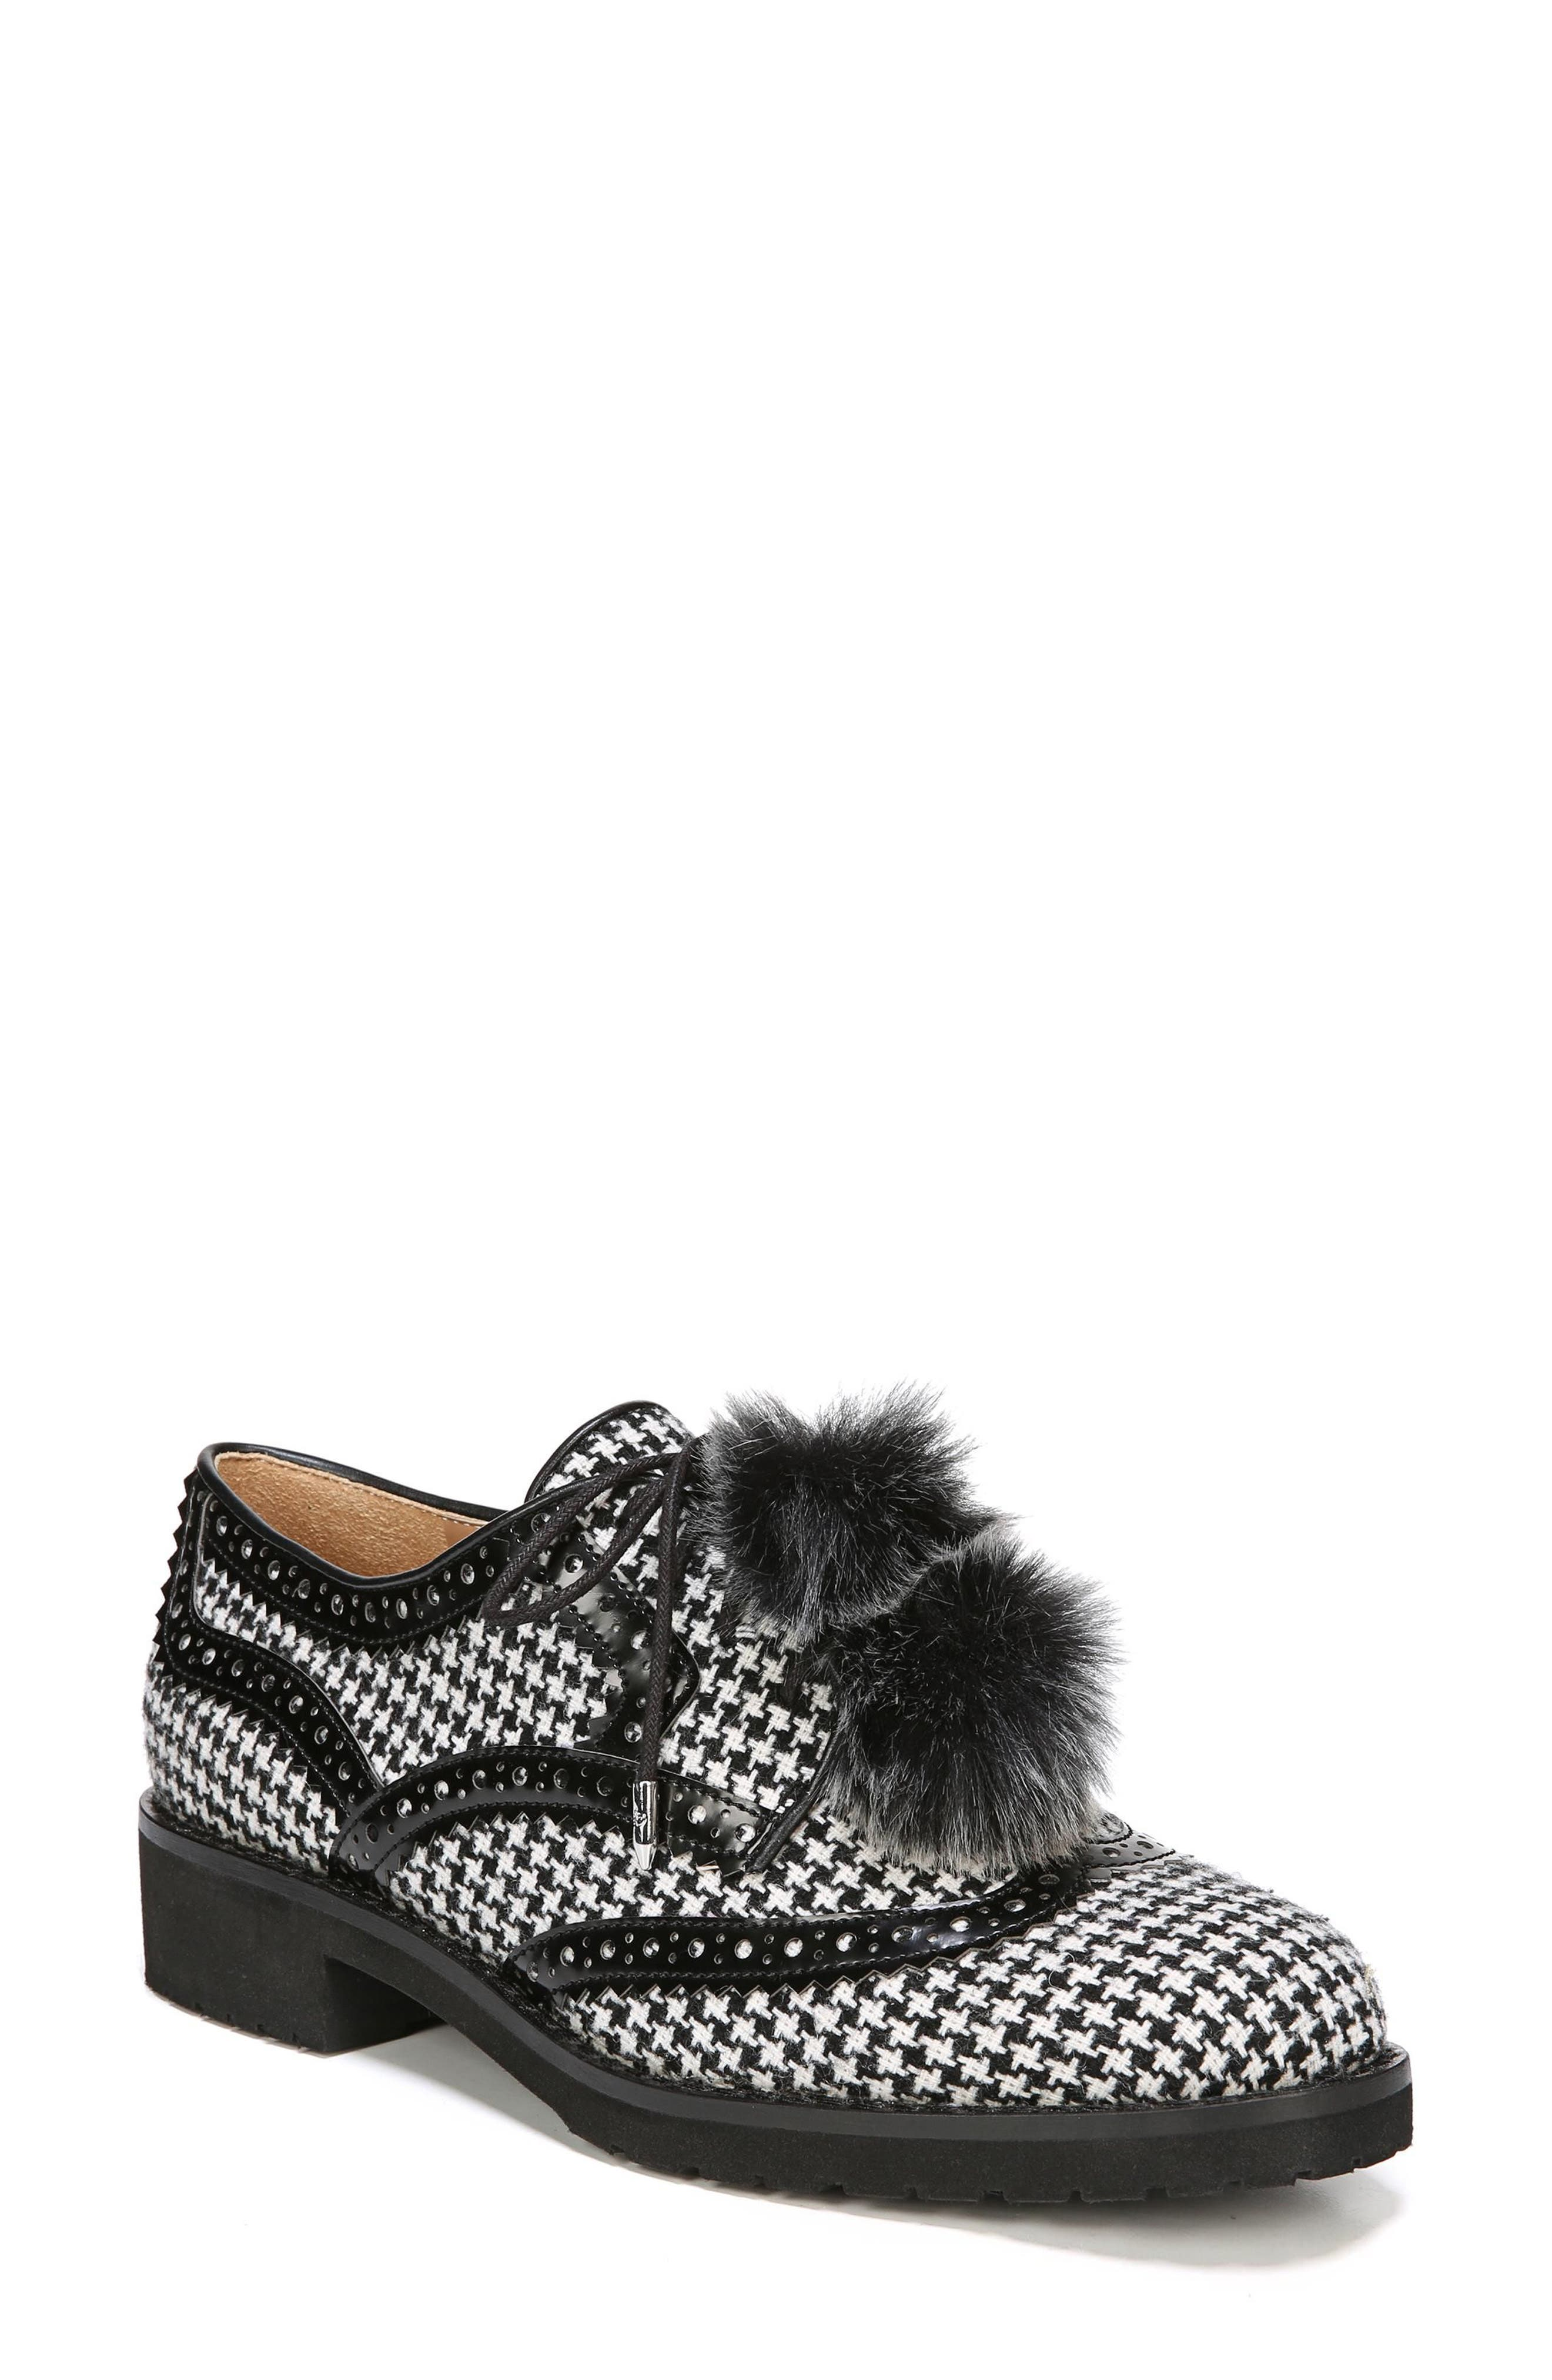 Dahl Oxford with Faux Fur Pompom,                             Main thumbnail 1, color,                             Black/ White Houndstooth